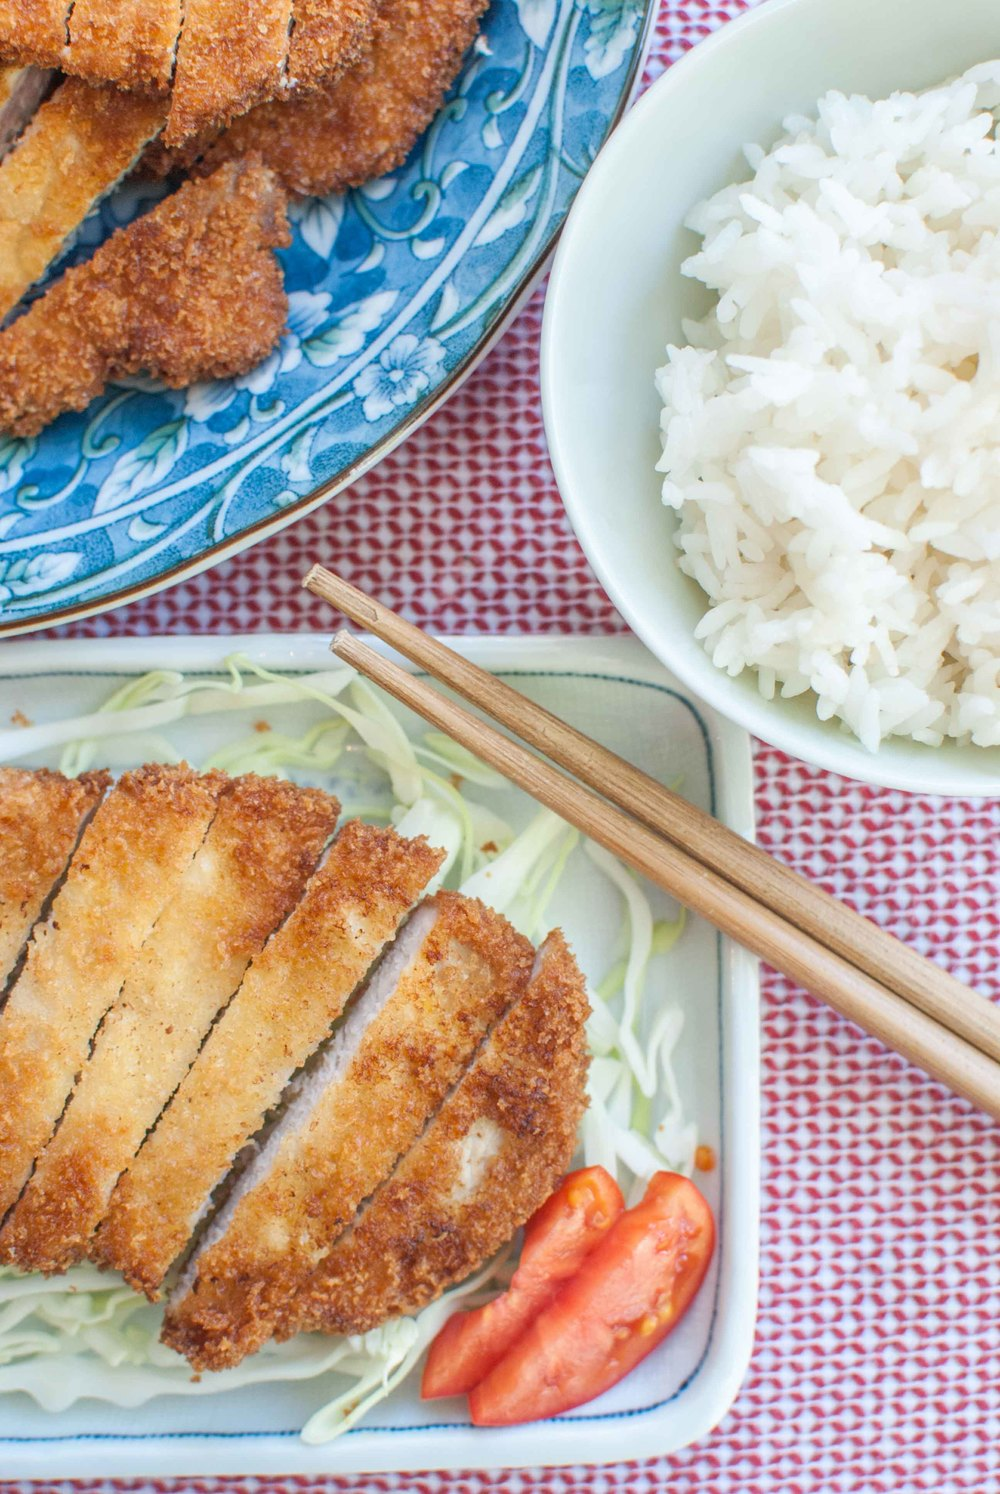 tonkatsu japanese fried breaded pork cutlet